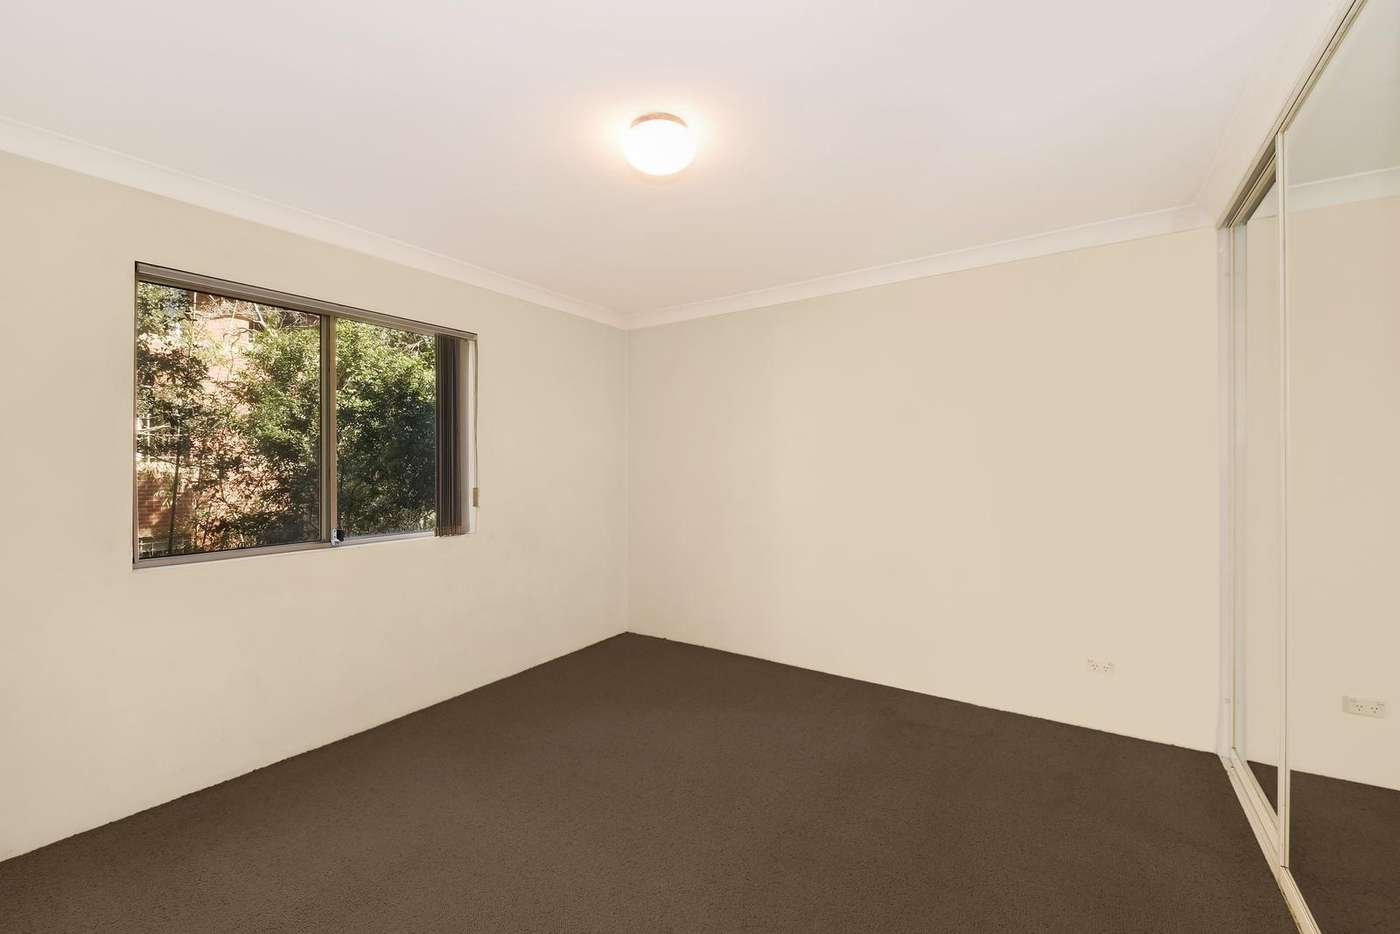 Sixth view of Homely apartment listing, 21/26 Linda Street, Hornsby NSW 2077